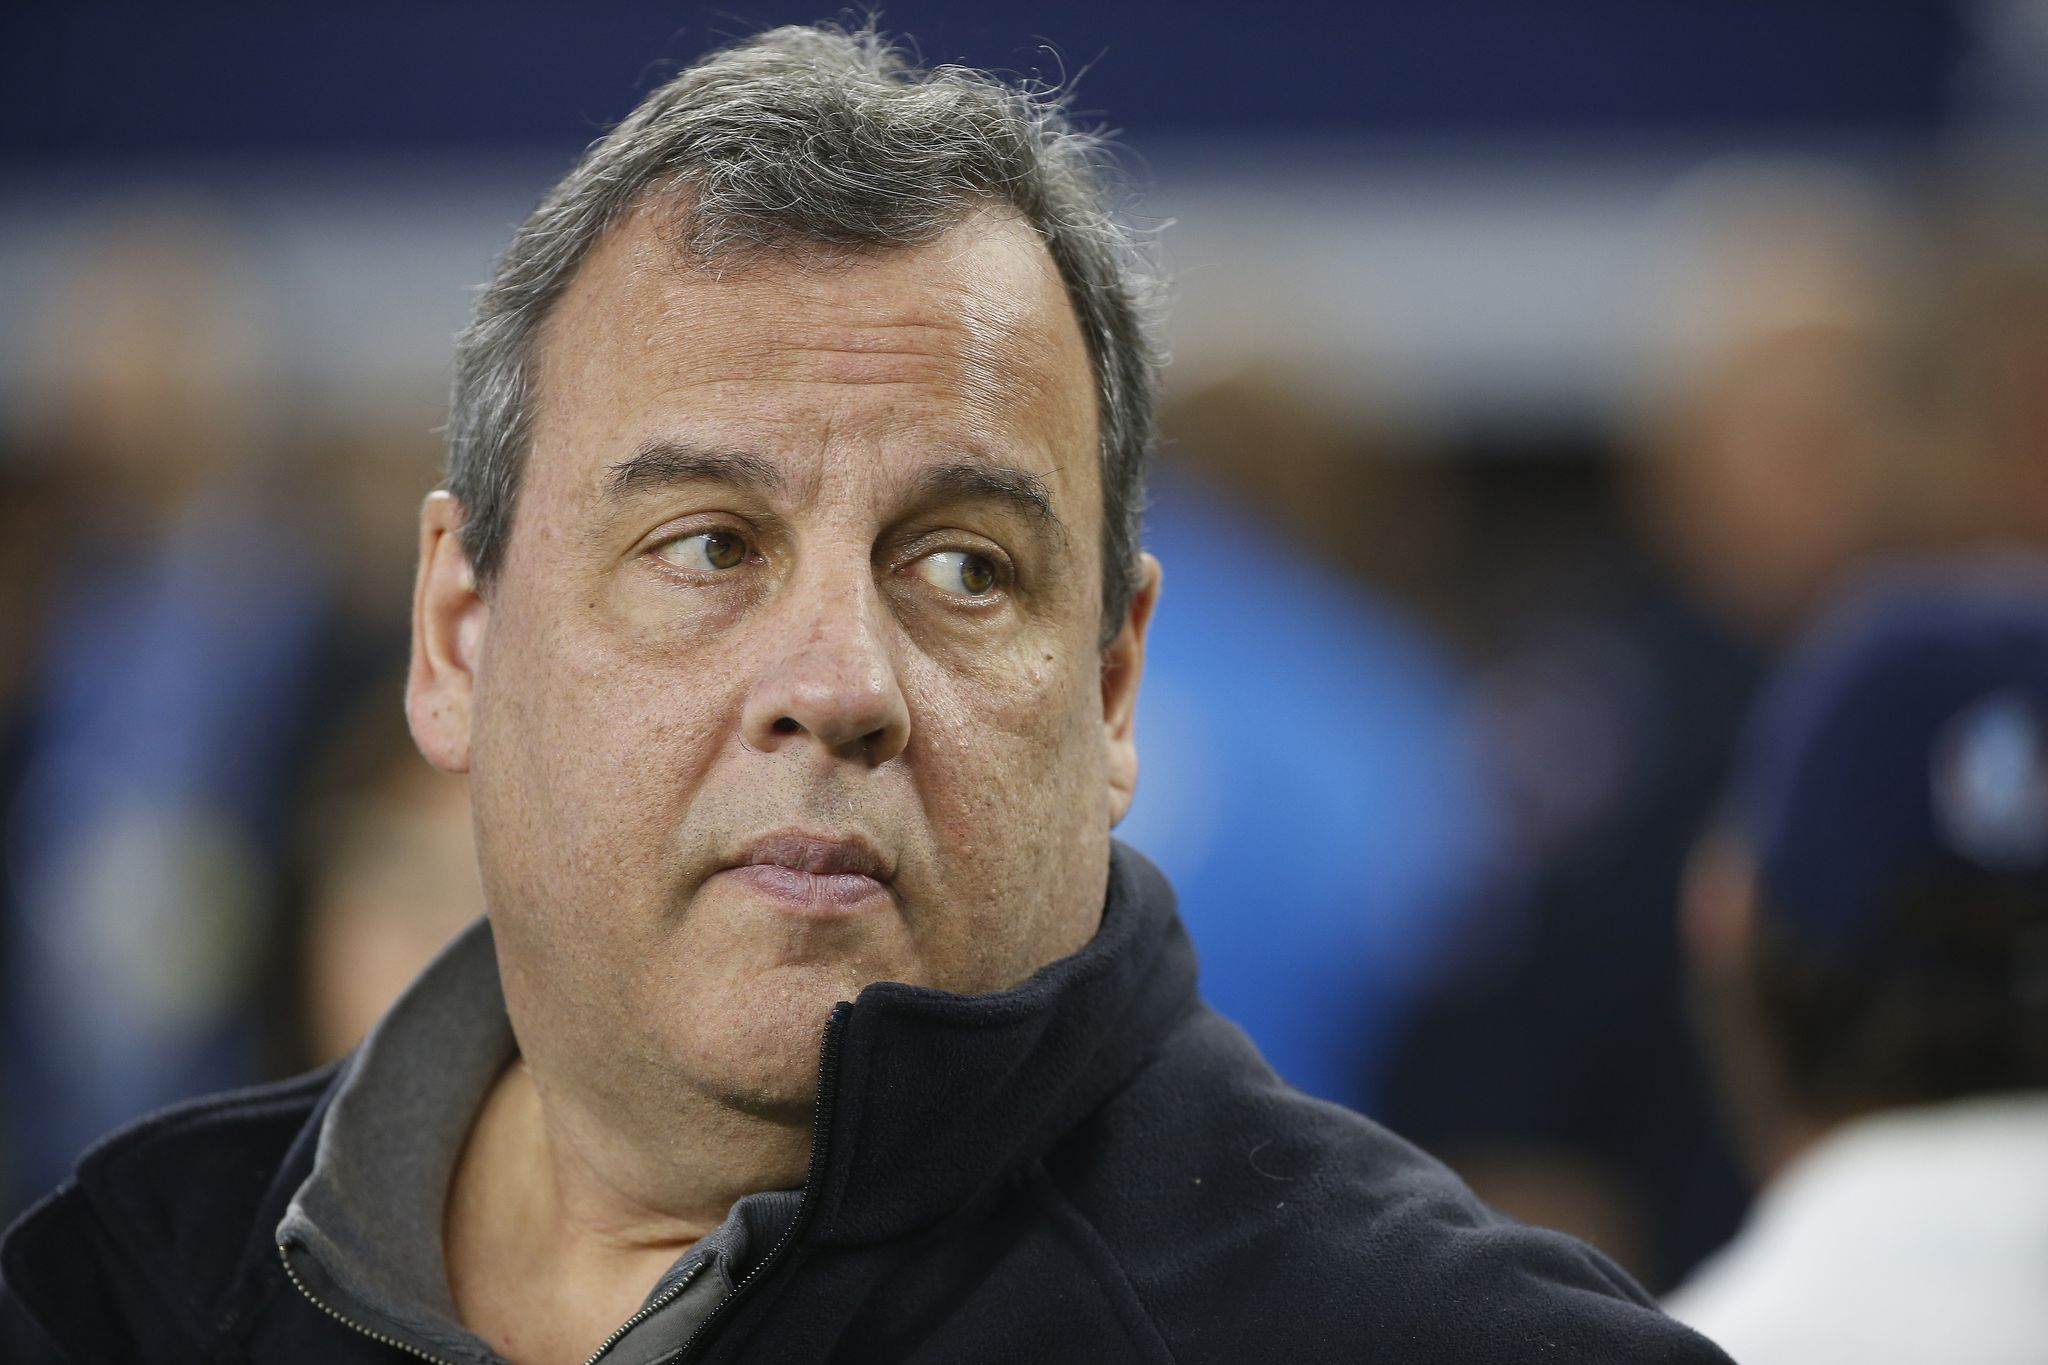 Chris Christie goes after Jared Kushner in new book, accuses him of carrying out political 'hit job'